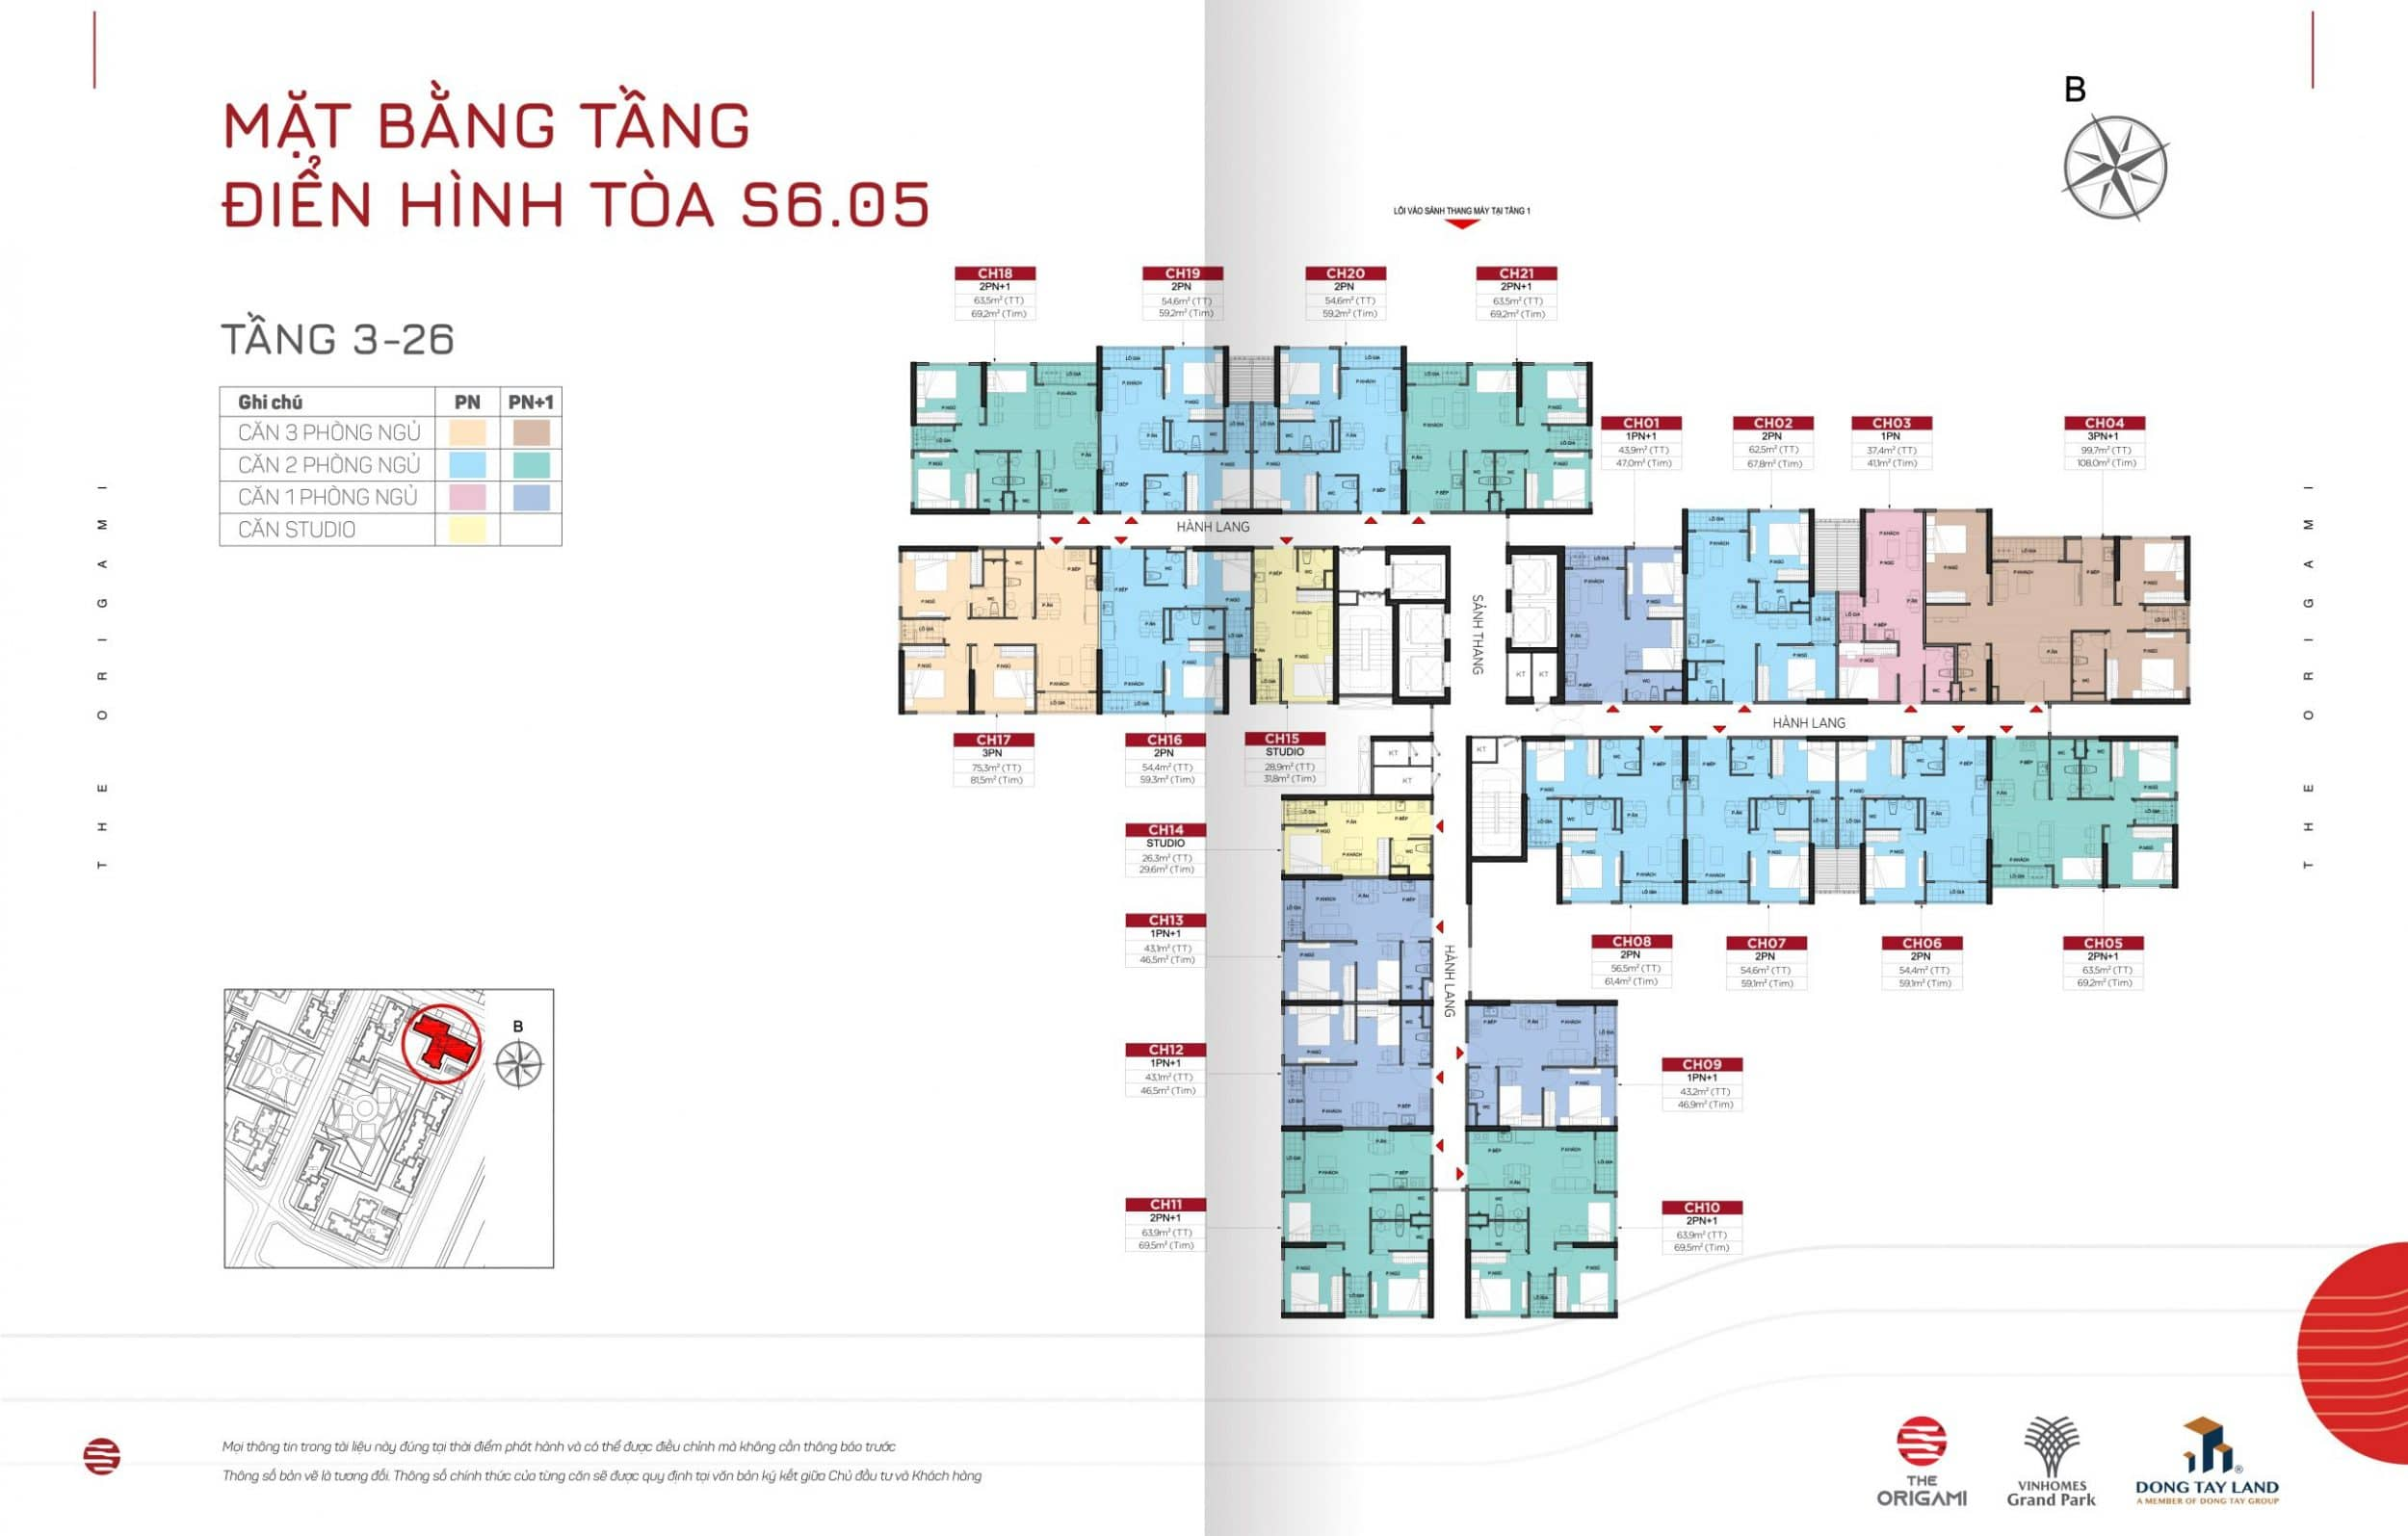 Mặt bằng The Origami toà S6.05-tầng 3-26